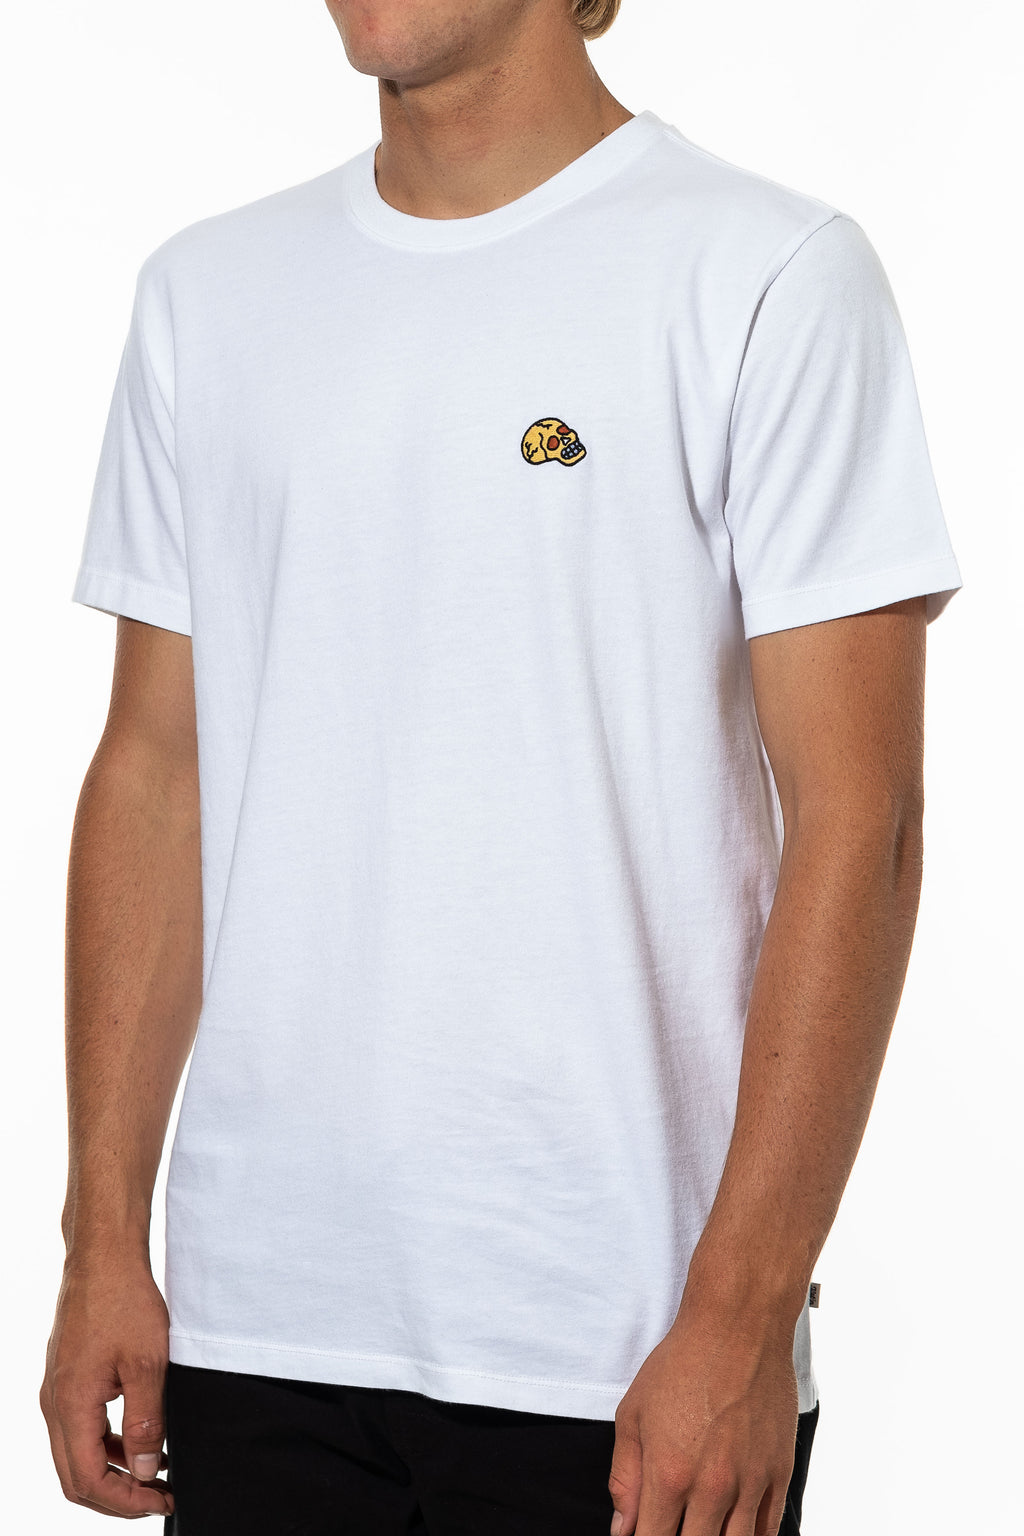 Red Eye Embroidery Tee (White)